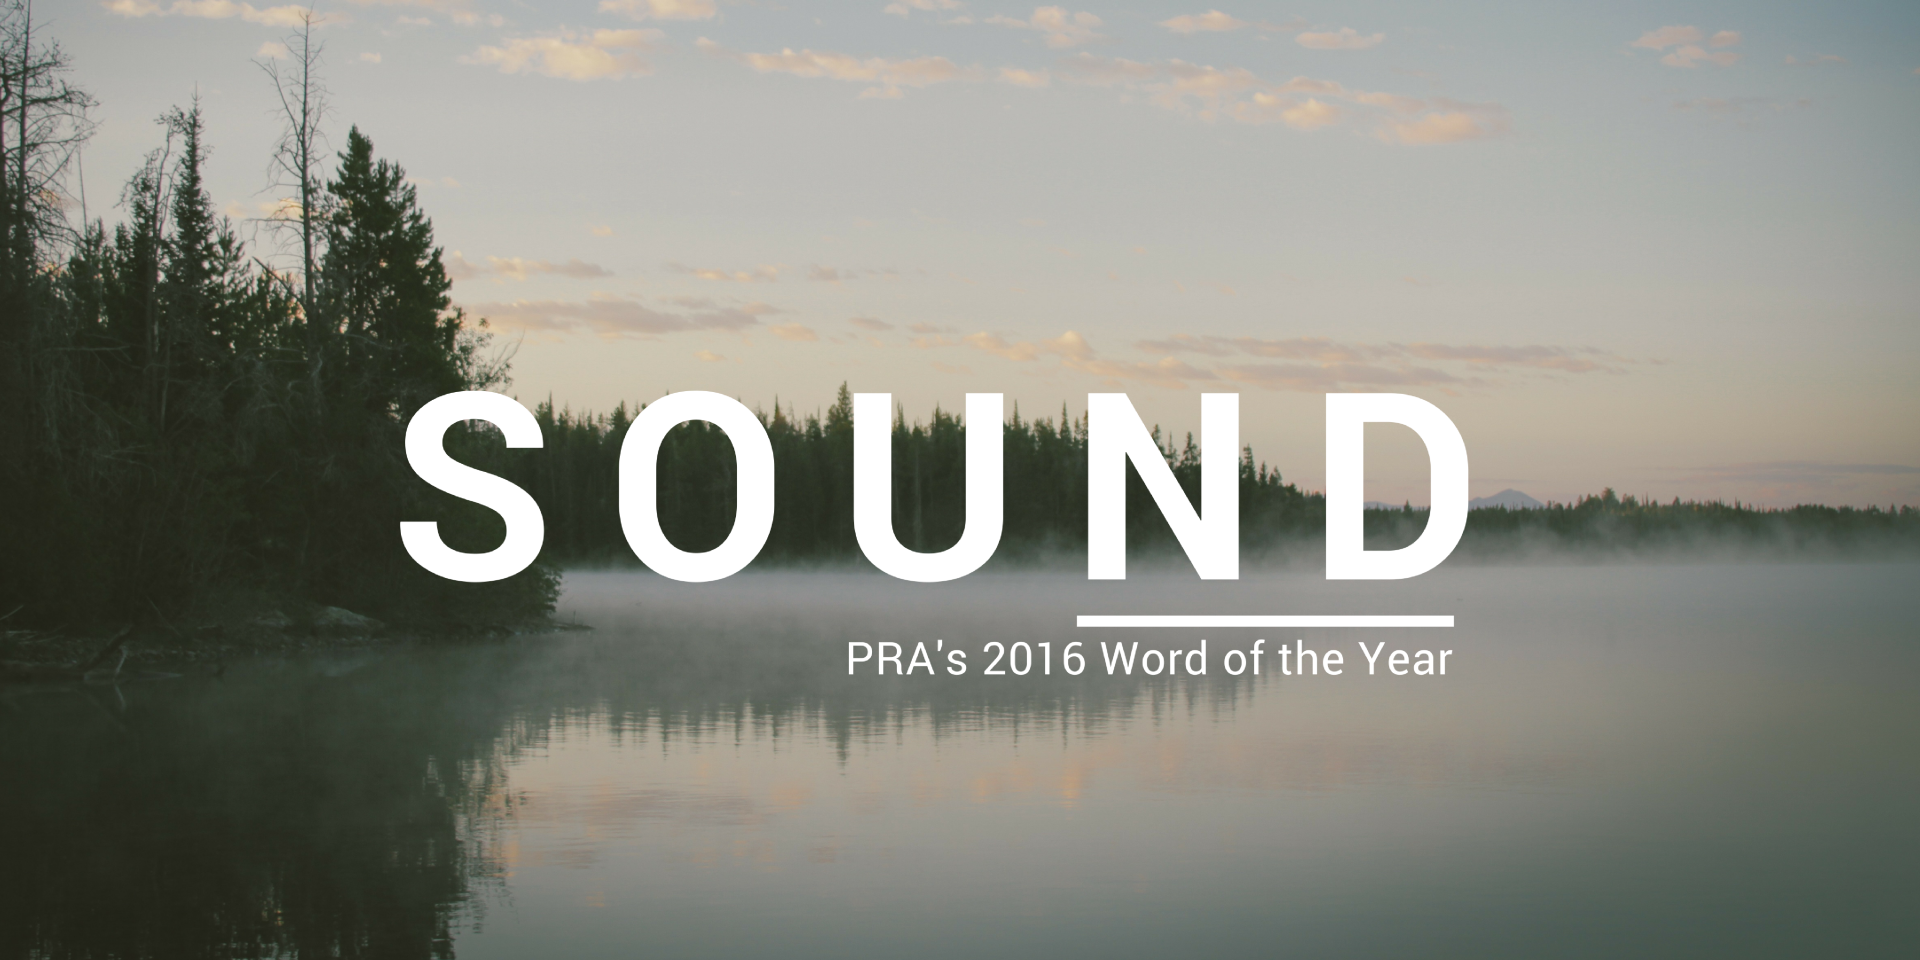 PRA 2016 Word of the Year: Sound